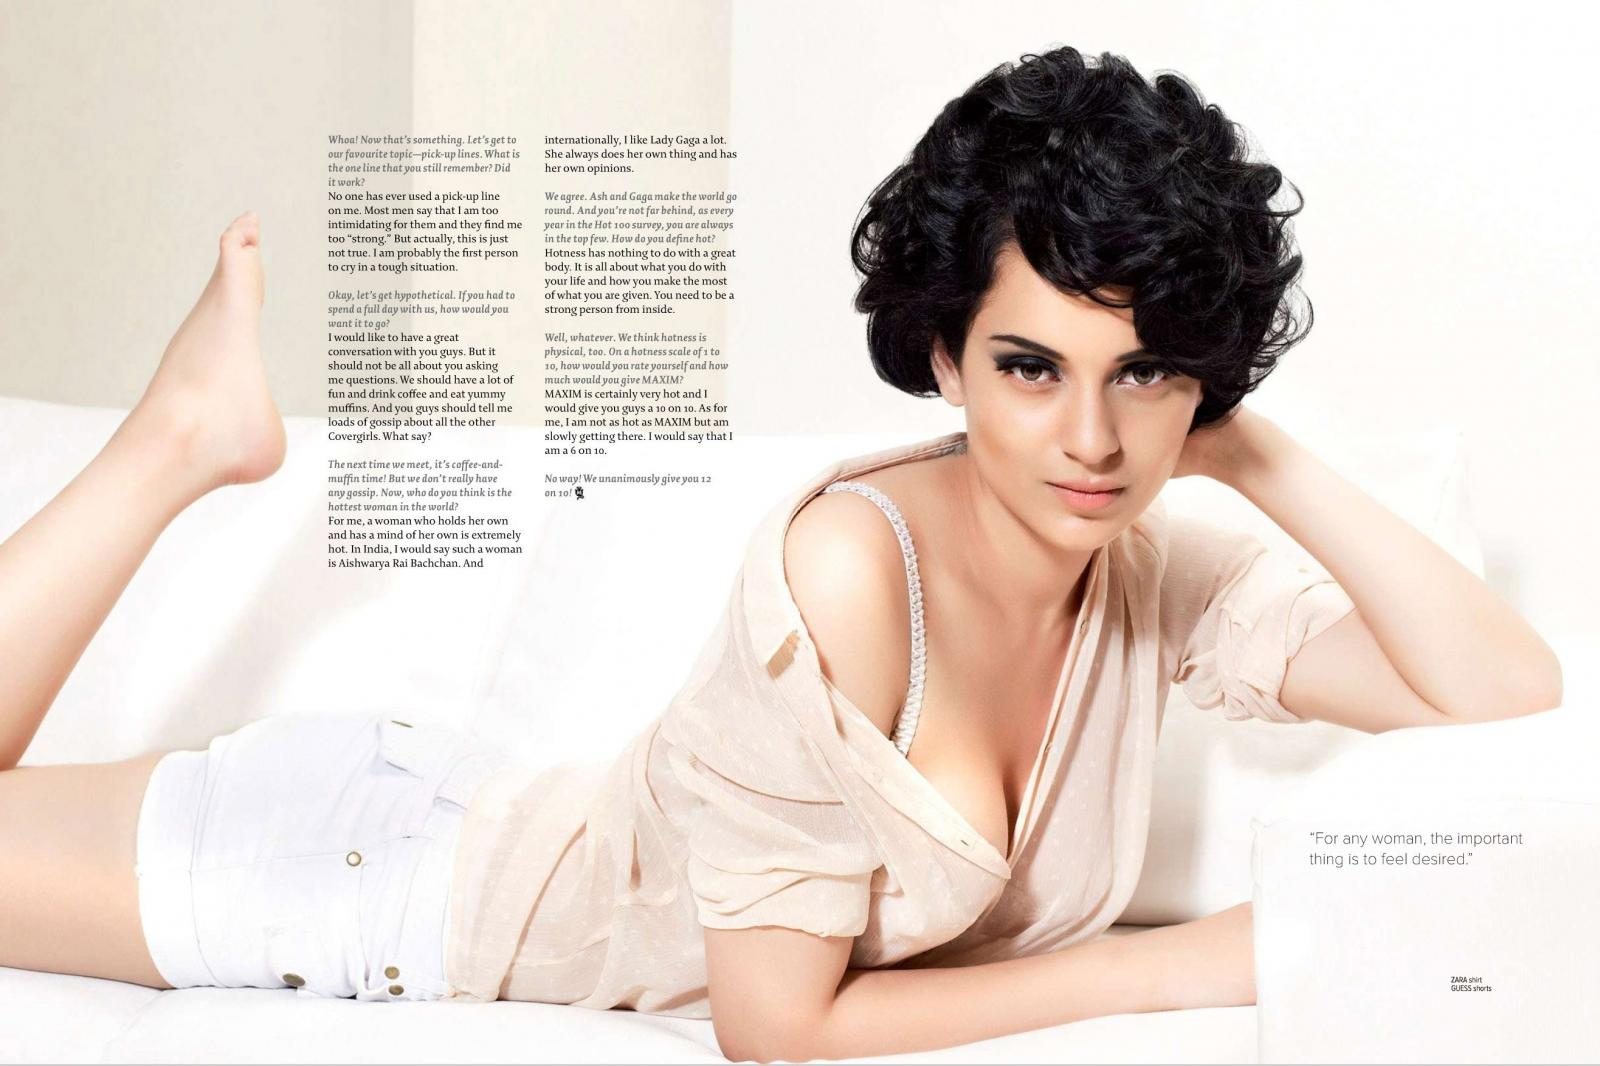 Bollywood Actresses In Maxim: Kangana Ranaut Photoshoot For Maxim Magazine Posters